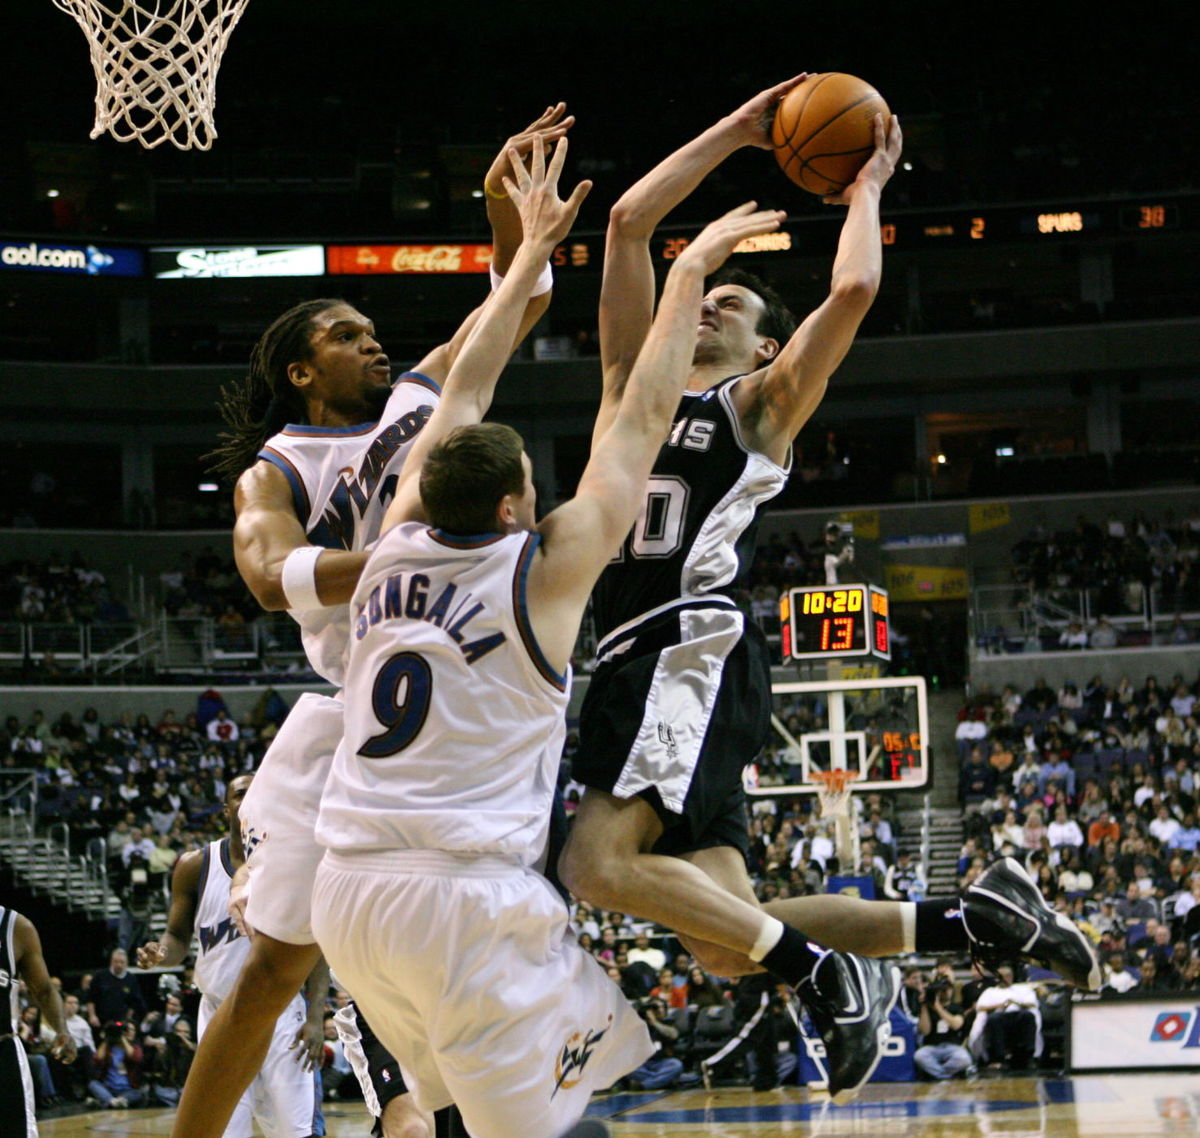 manu ginobili Ginobili was reportedly set to meet with spurs head coach gregg popovich last week per espn's adrian wojnarowskithe 16-year veteran had yet to make a decision on his future, according to the report.